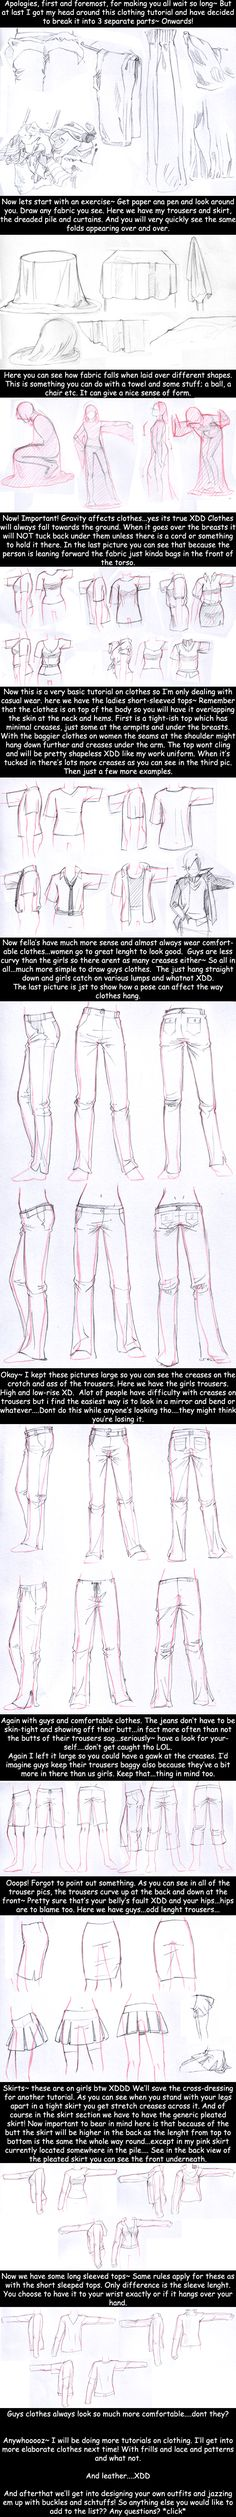 Clothes Tutorial from a kind soul on deviantart